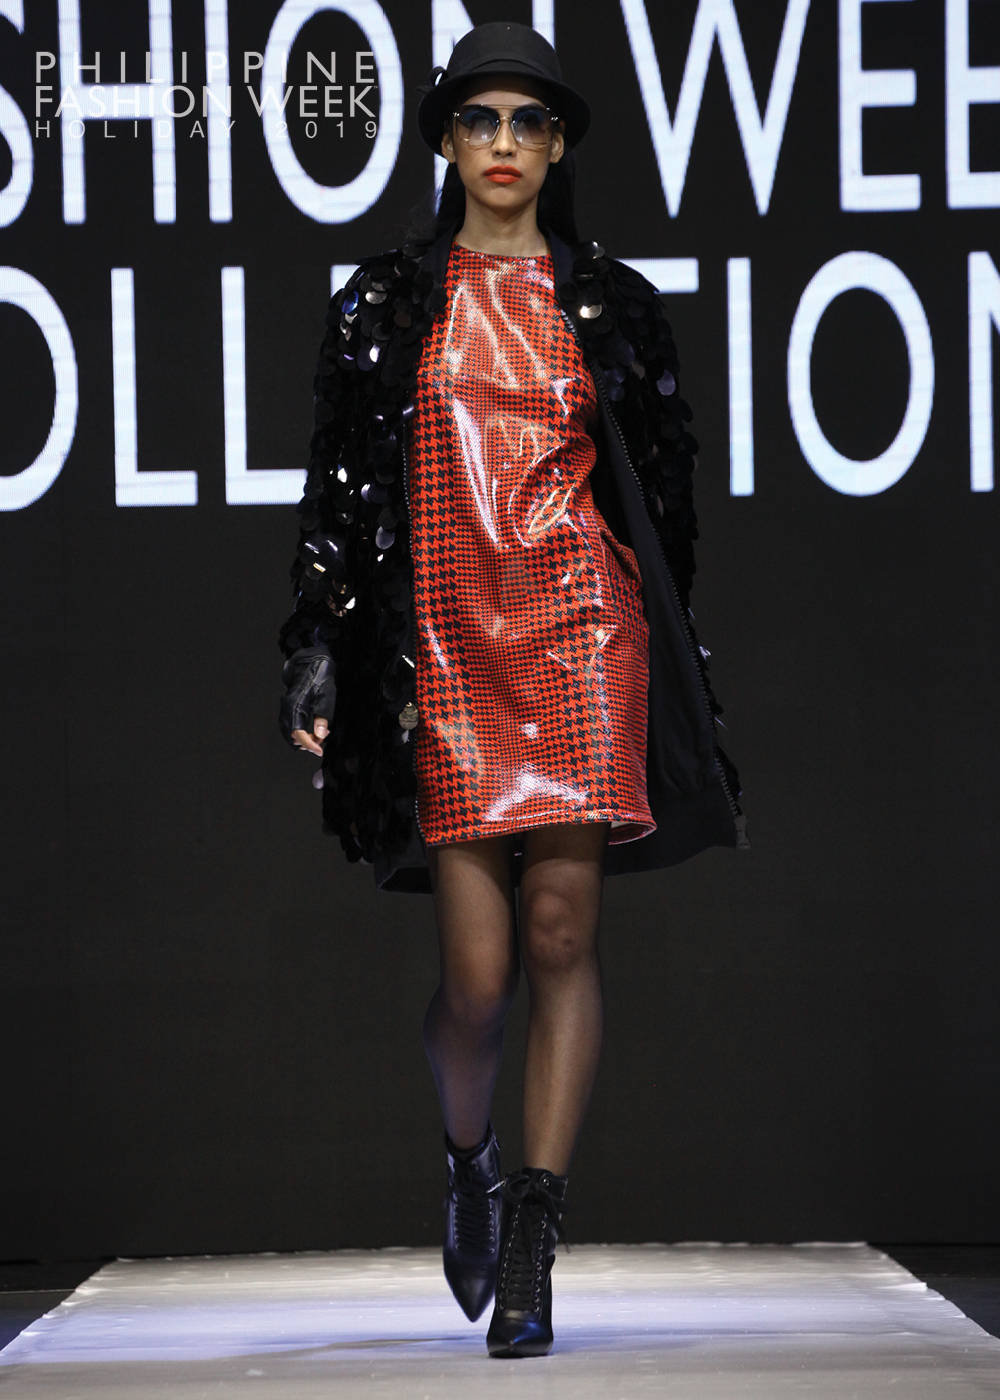 PhFW_collection show24.jpg